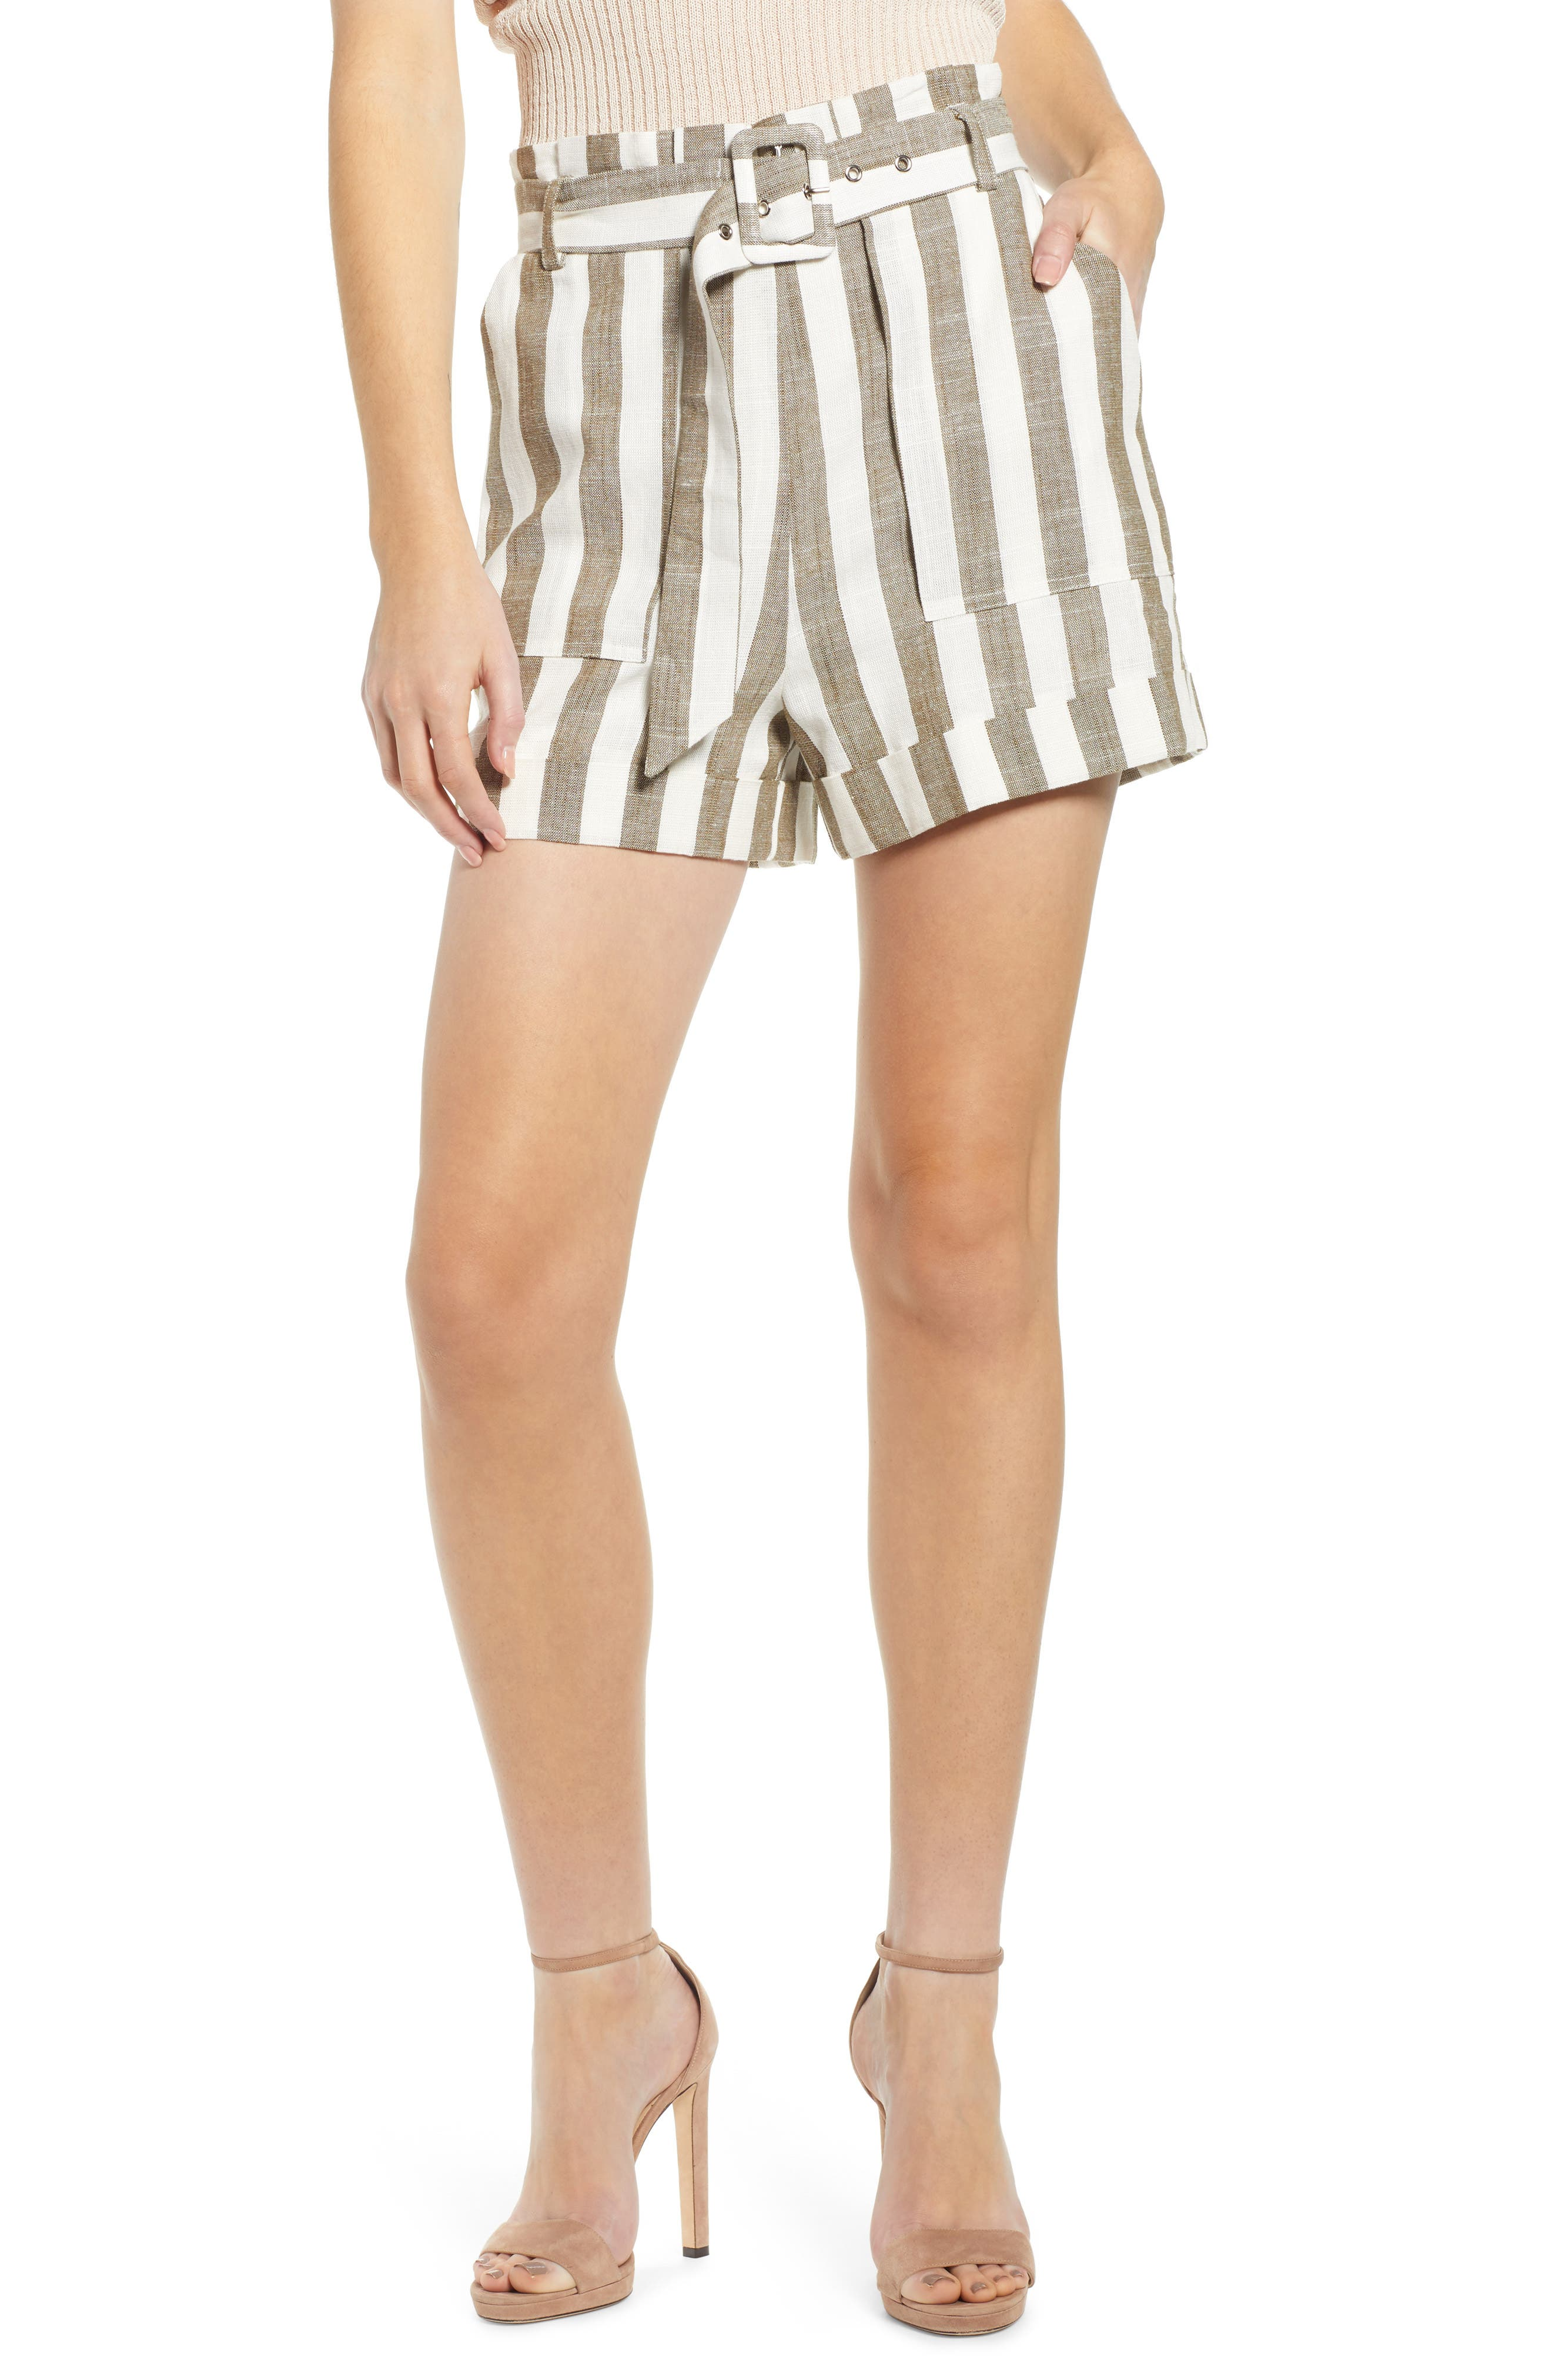 CHRISELLE LIM COLLECTION Chriselle Lim Cherie Shorts, Main, color, OLIVE STRIPE